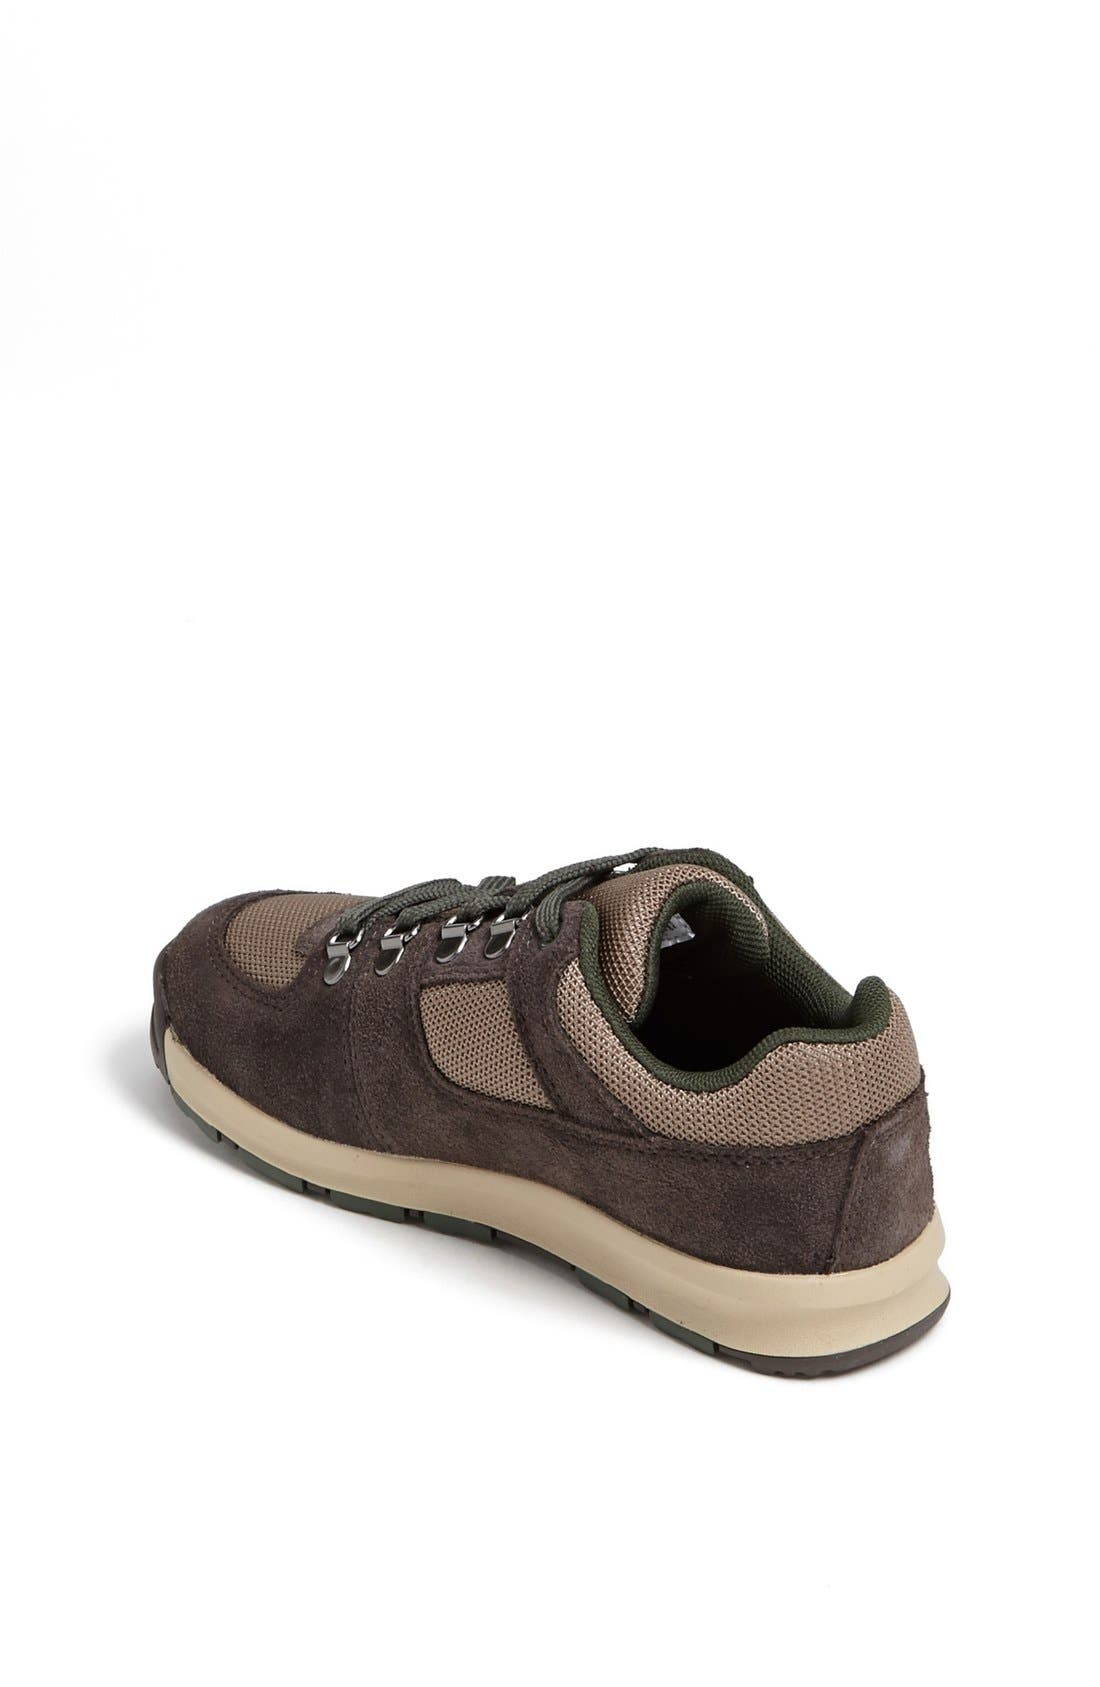 Alternate Image 2  - Timberland Earthkeepers® 'GT Scramble' Low Boot (Toddler, Little Kid & Big Kid)